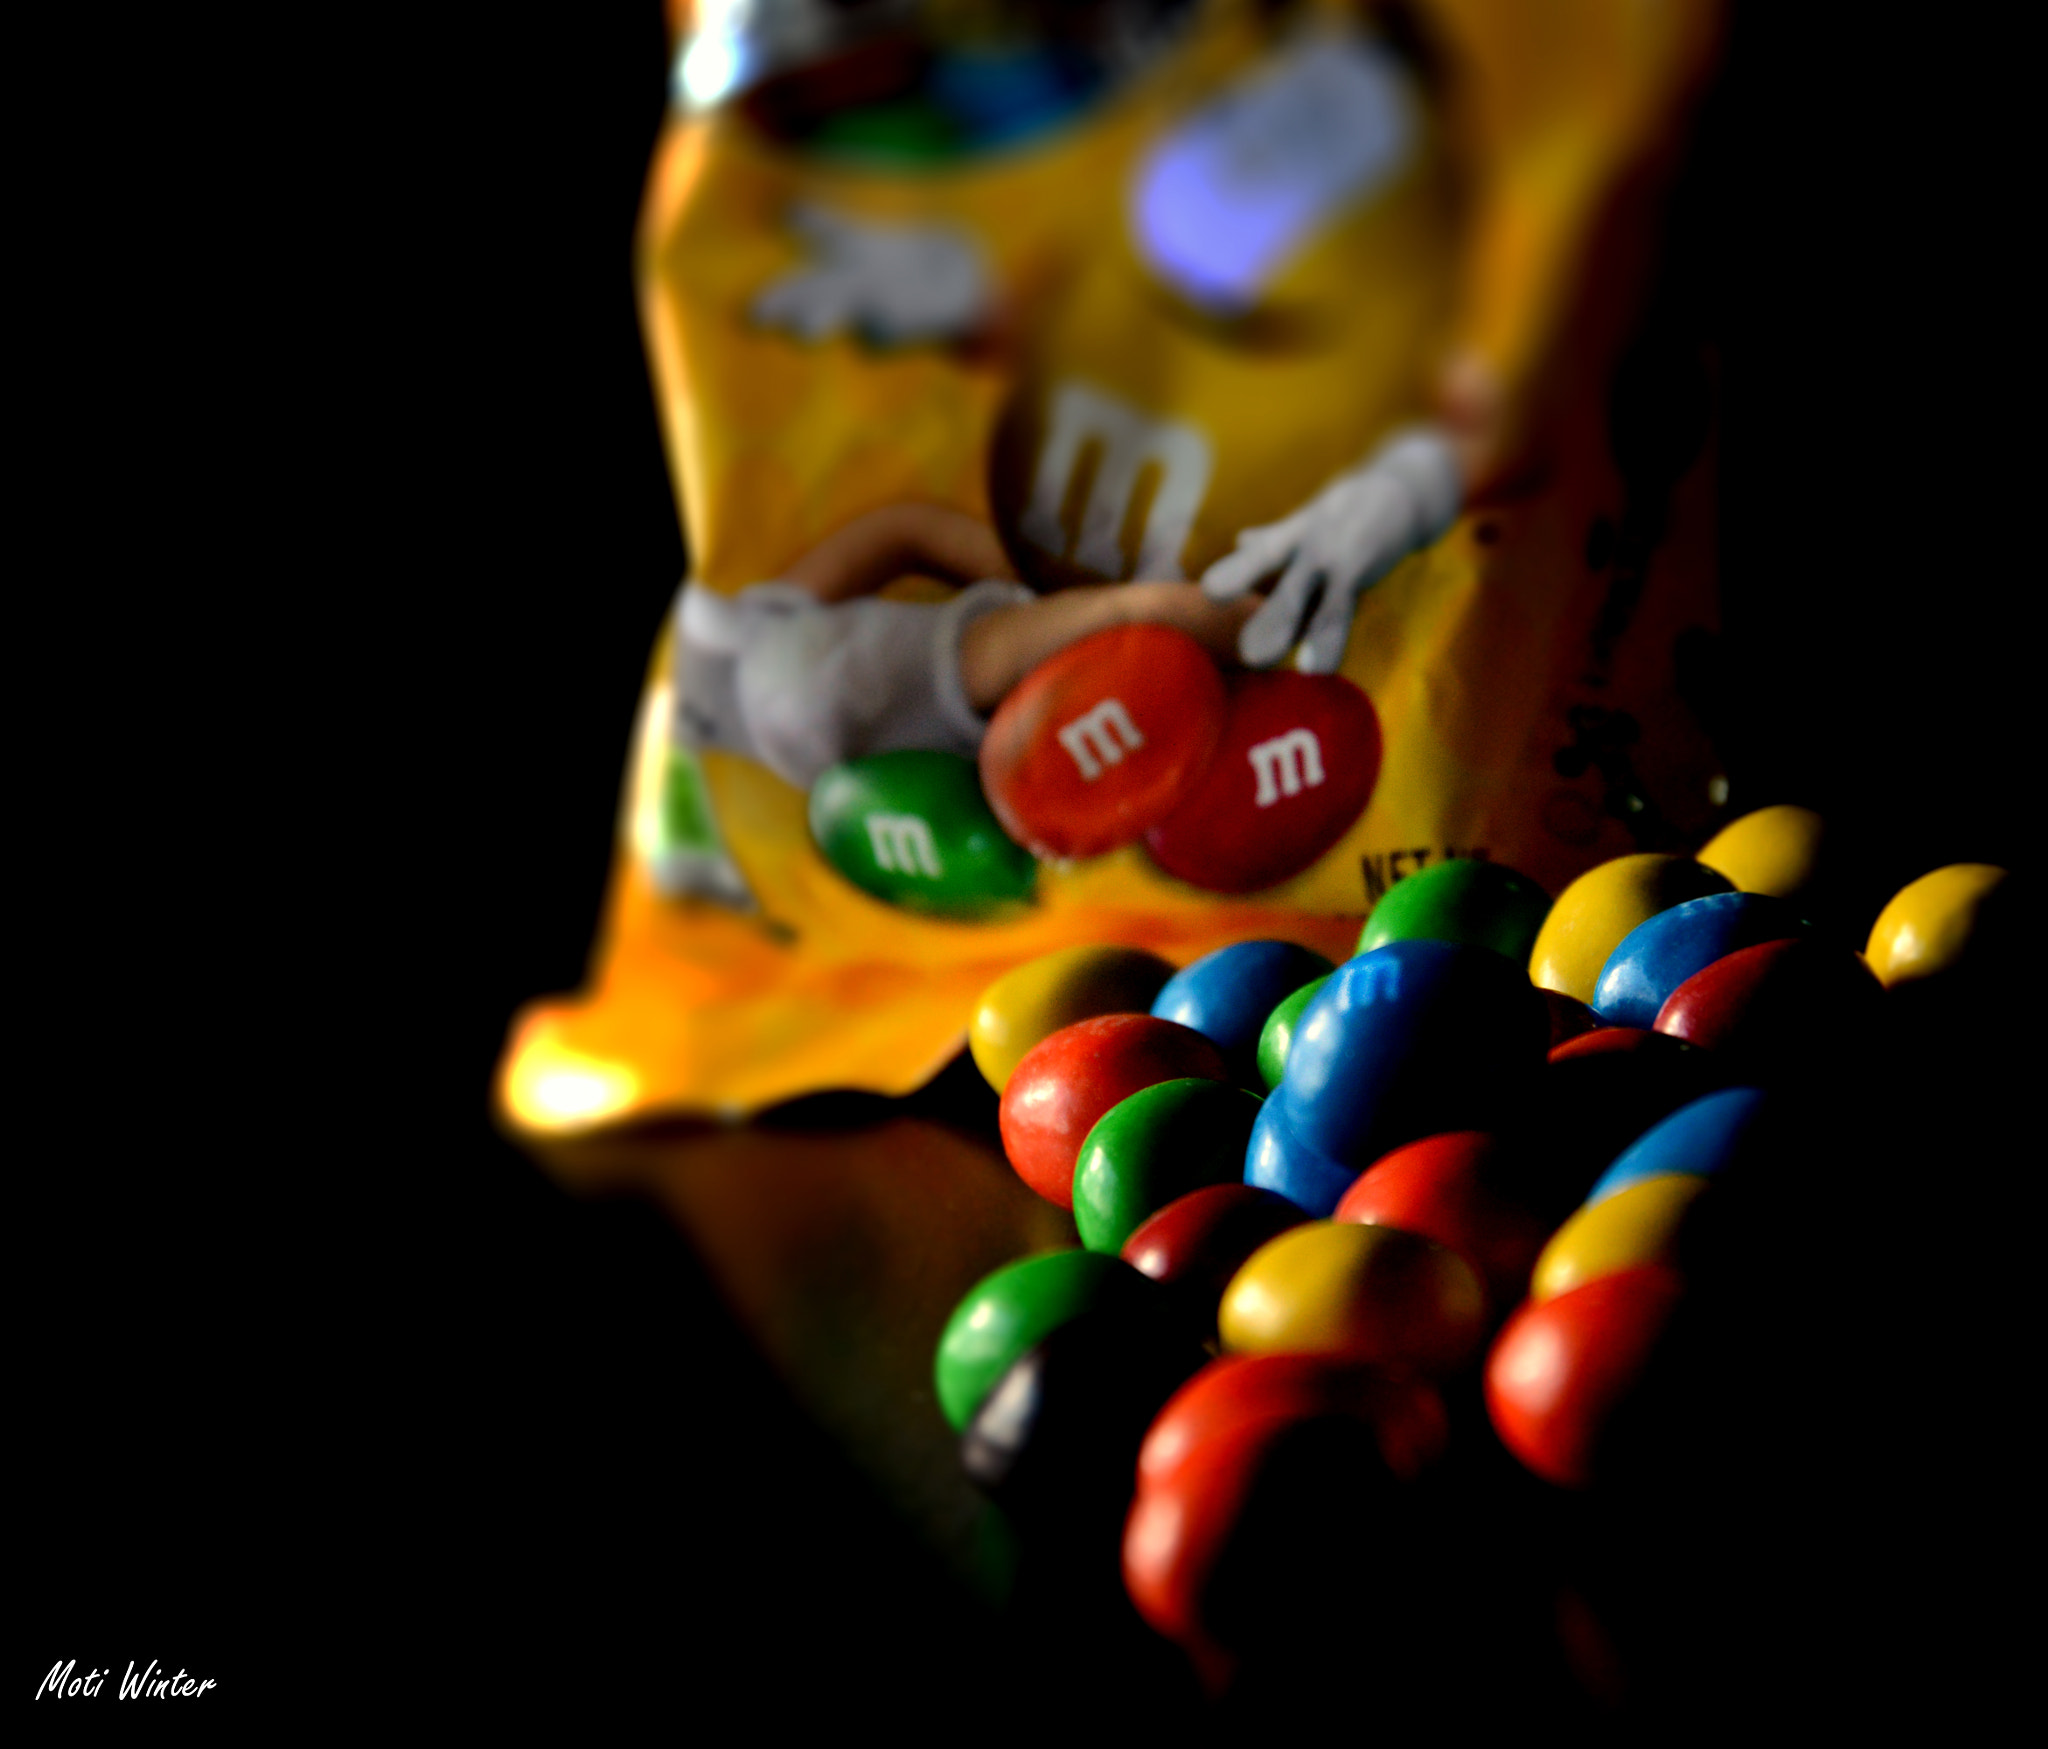 Photograph Good morning m&m's by Moti Winter on 500px